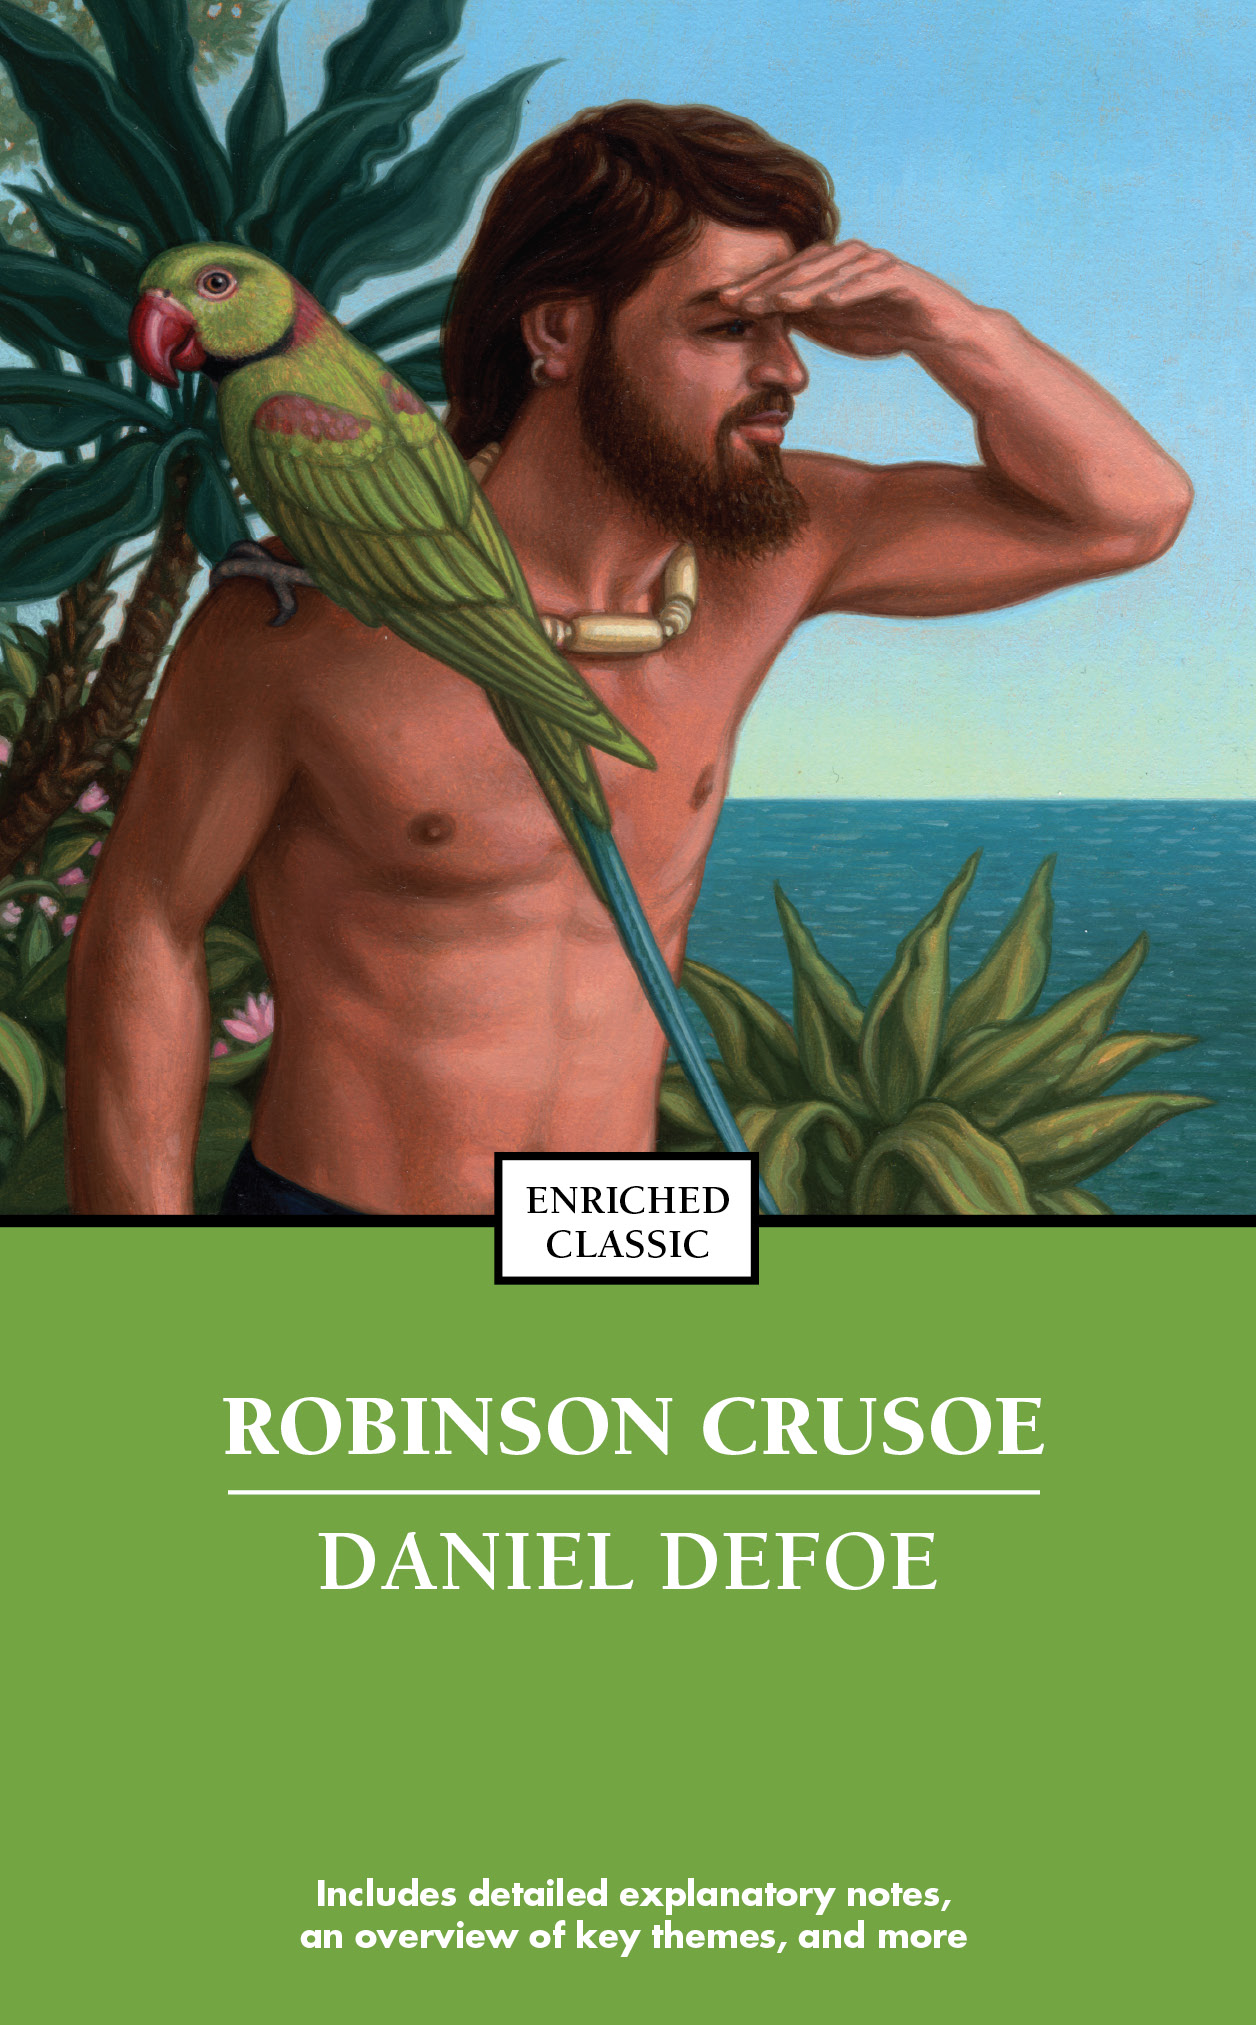 What are several of the major themes in Daniel Defoe's novel Robinson Crusoe?